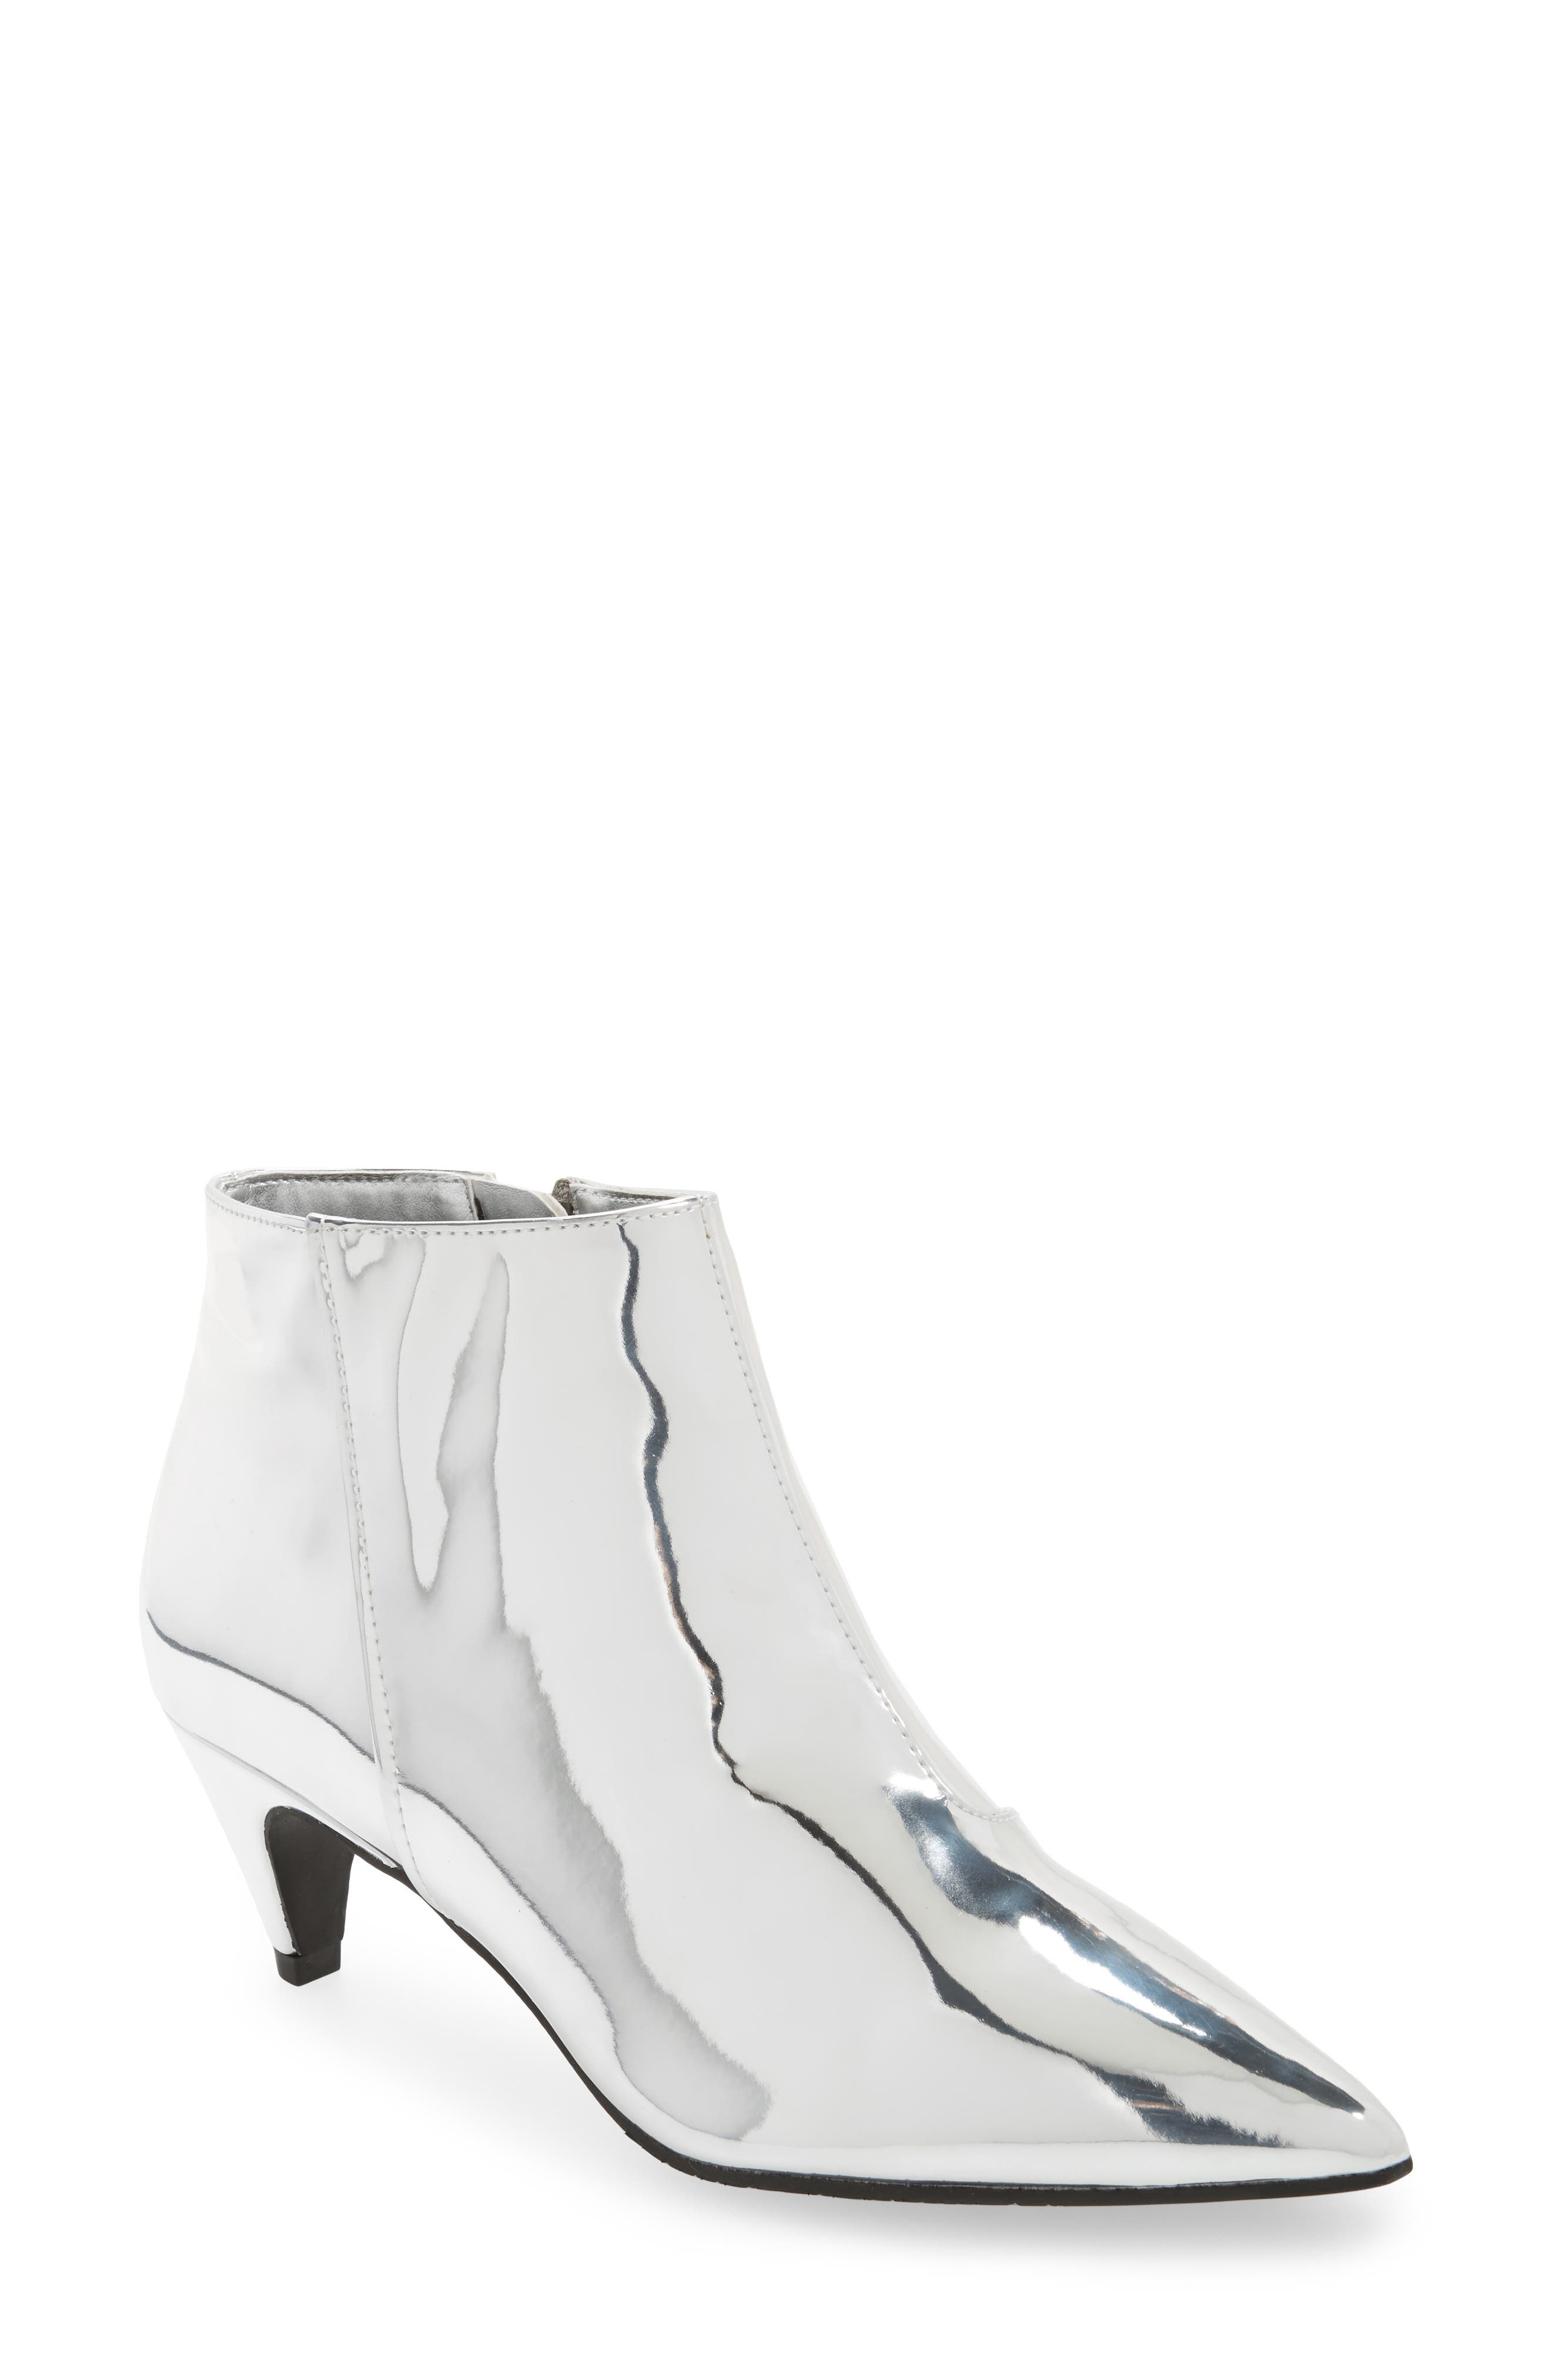 Major Pointy Toe Bootie,                         Main,                         color, Silver Mirror Faux Leather